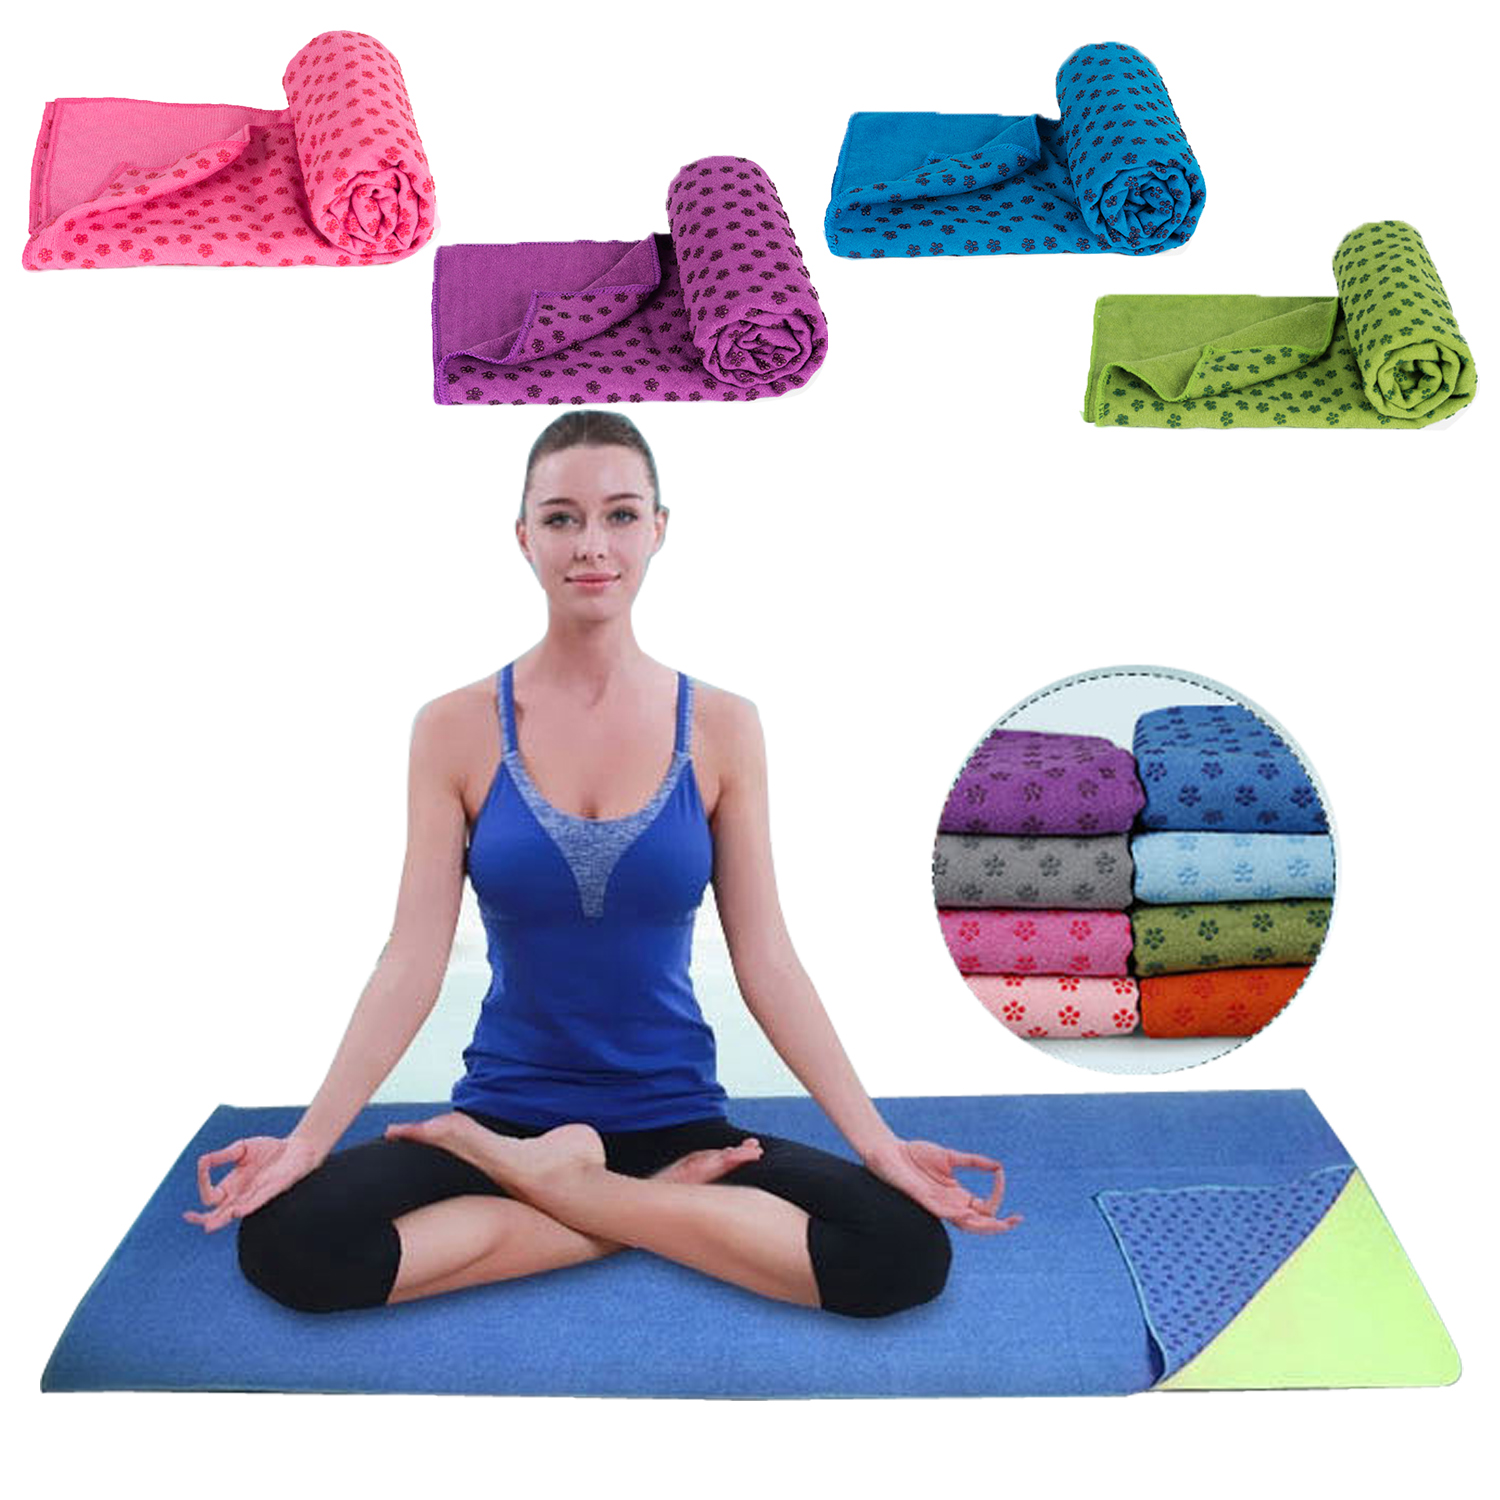 Soft Travel Sport Fitness Exercise Yoga Pilates Mat Cover Towel Blanket Non-slip Sports Towel 183x63cm Free Shipping